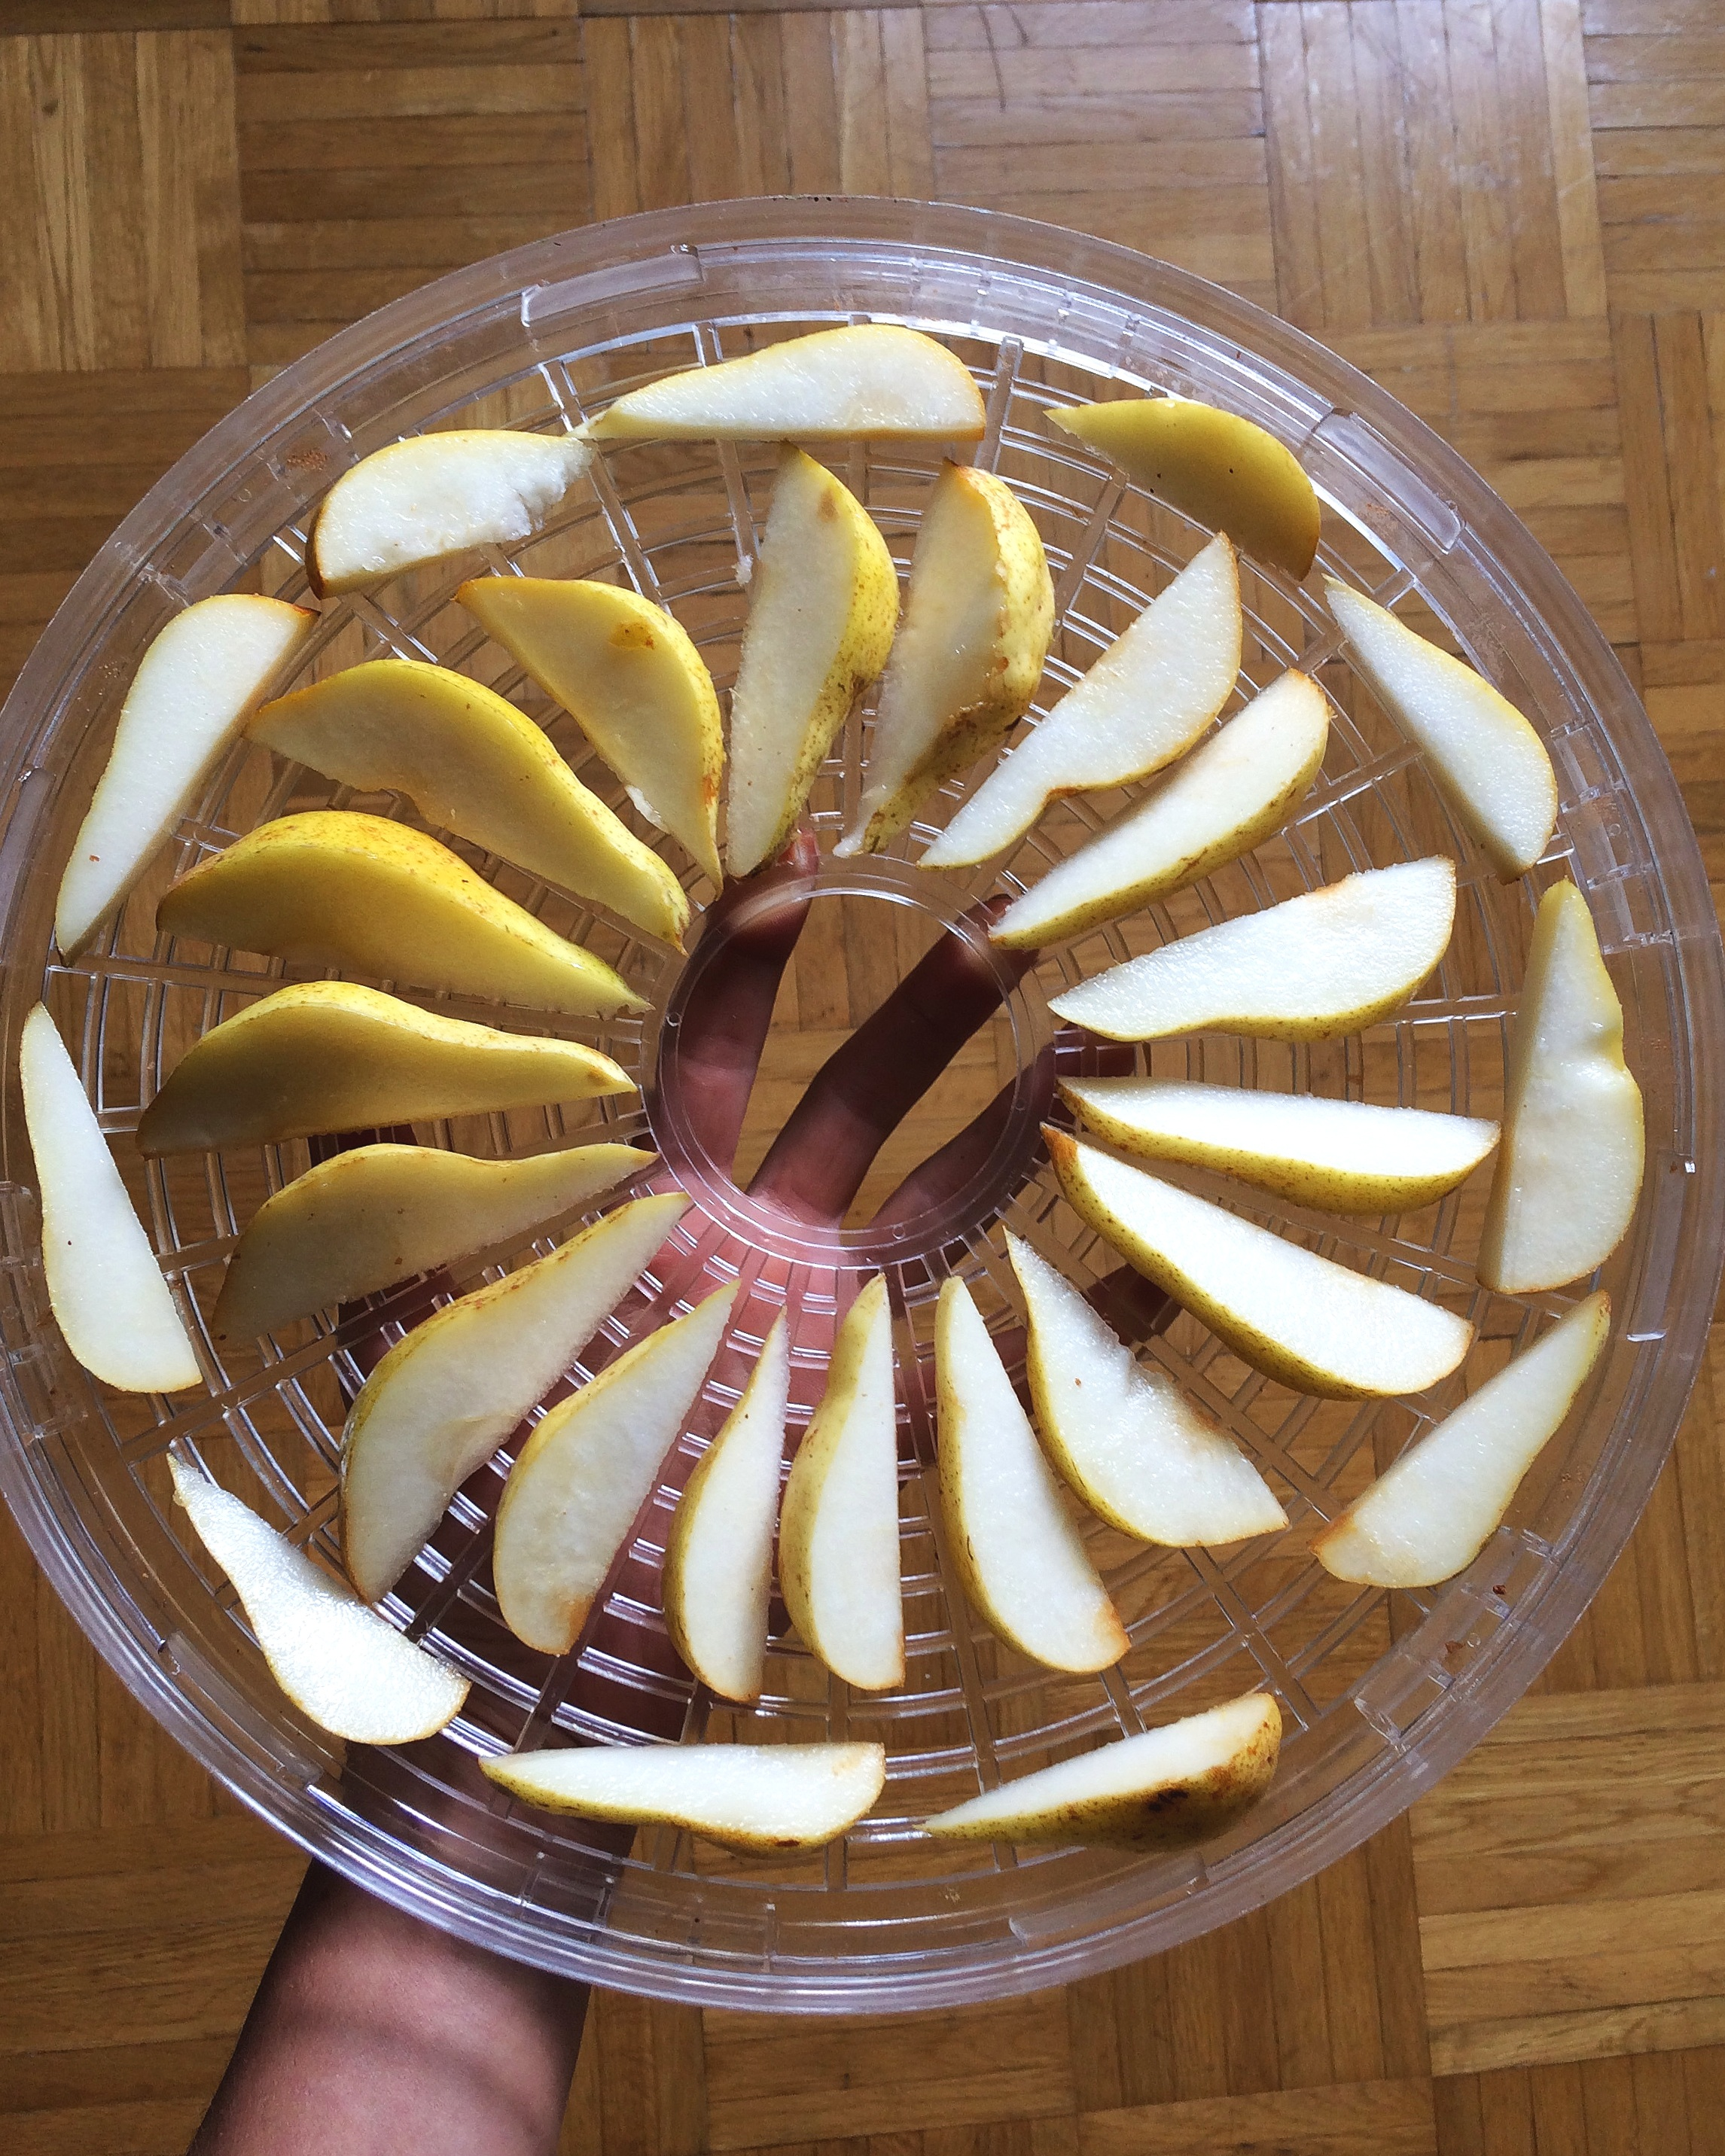 Pears+Before+Dehydrating+-+Preserve+Food